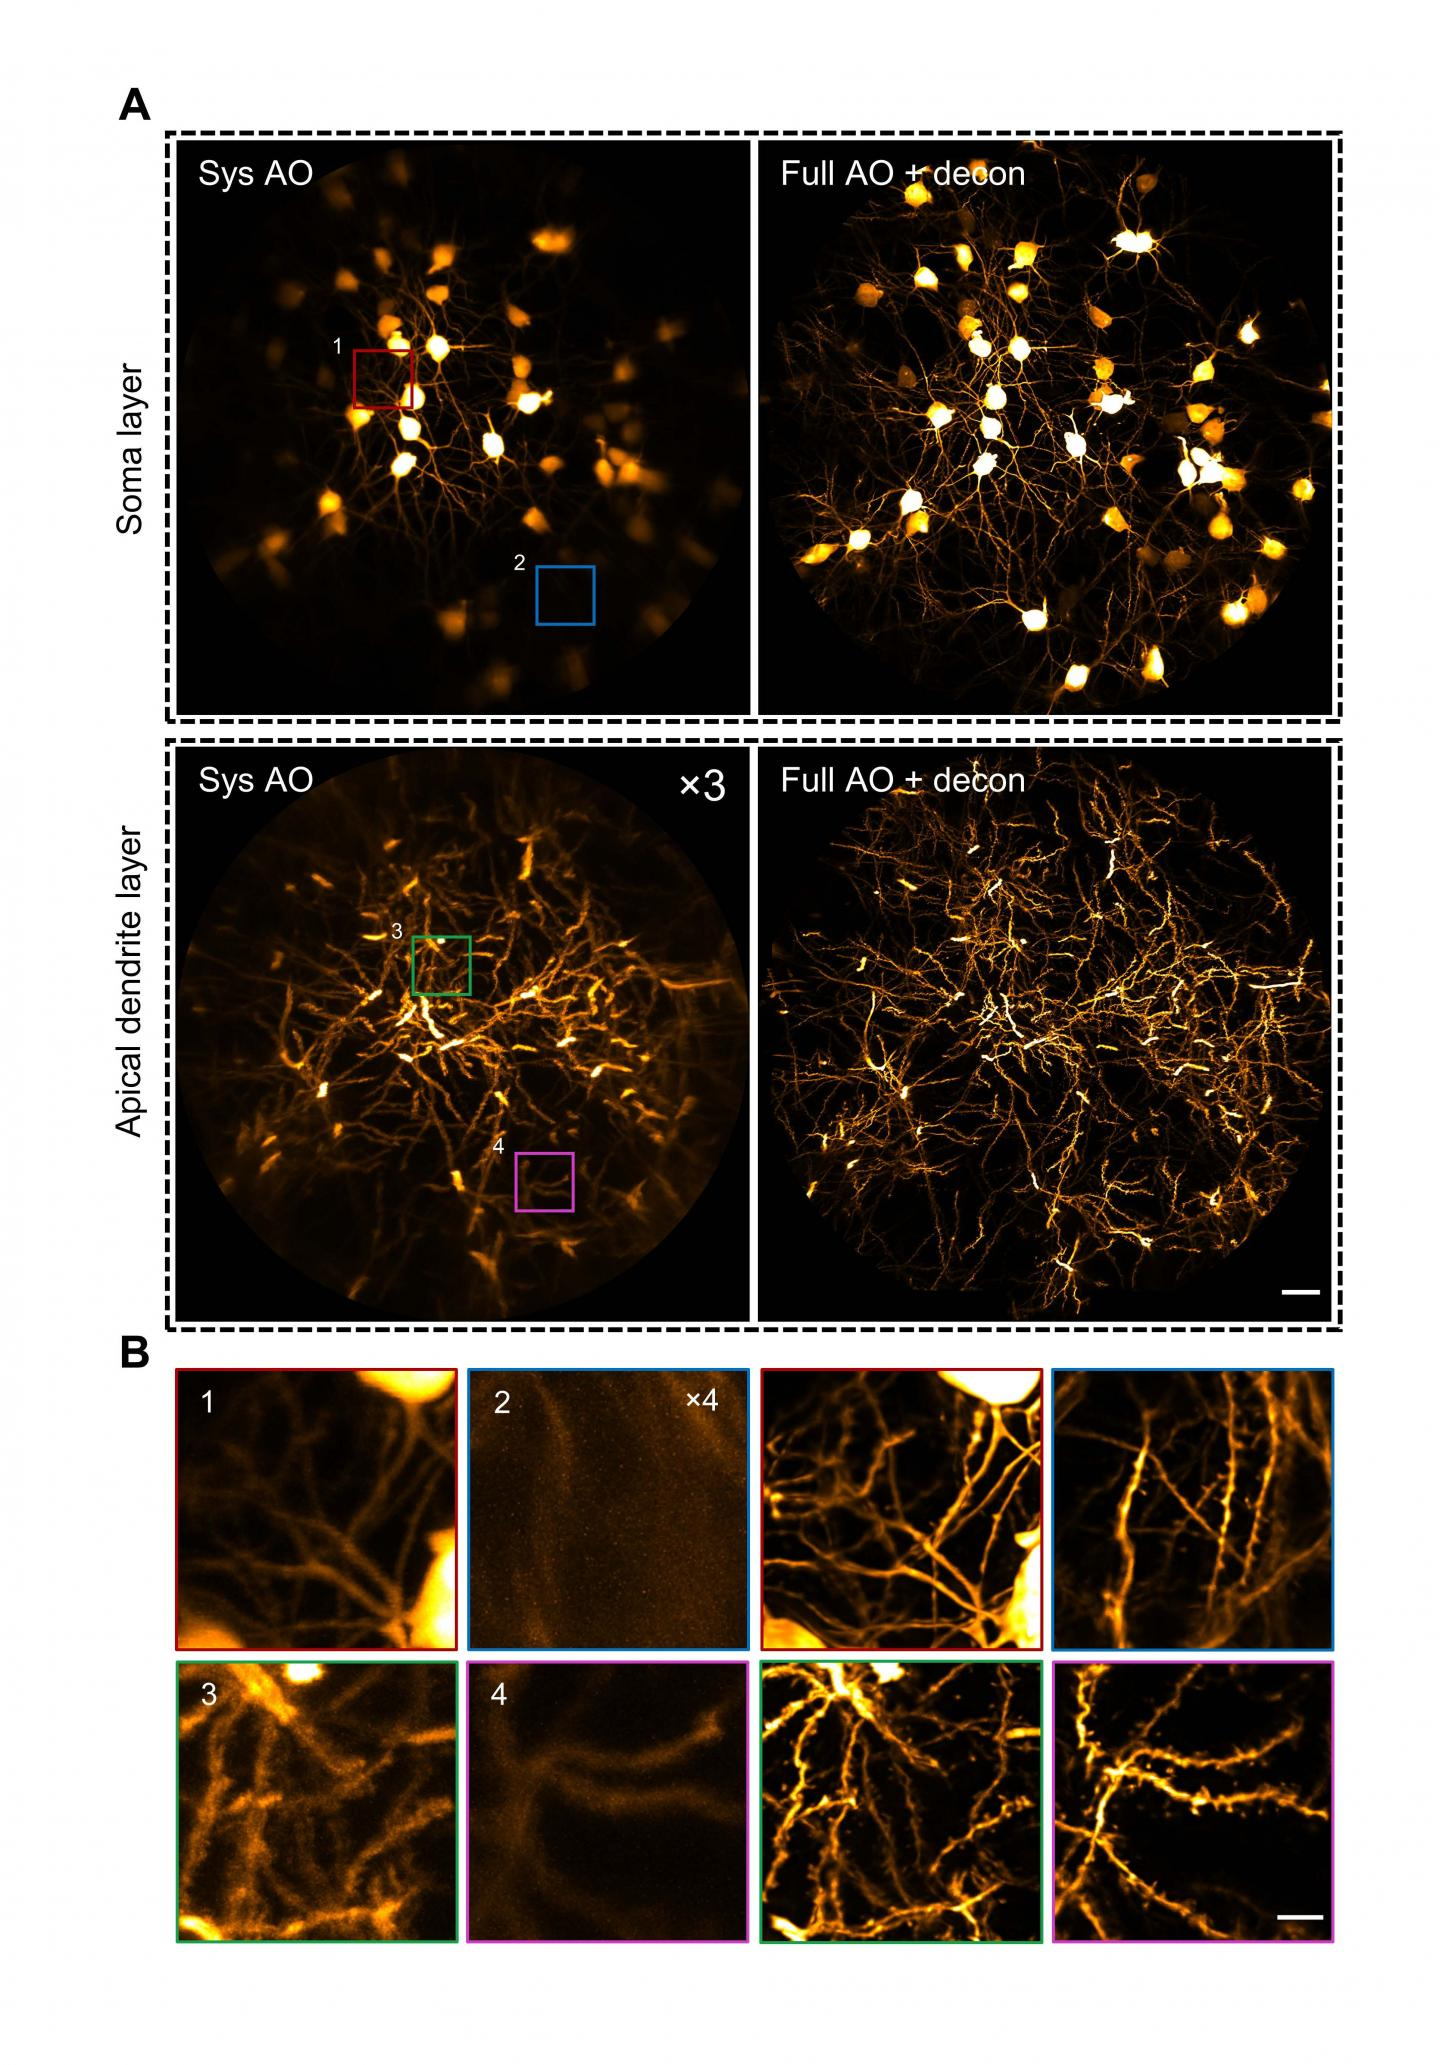 AO two-photon endomicroscope enables in vivo imaging of the mouse hippocampus at synaptic resolution over a large FOV